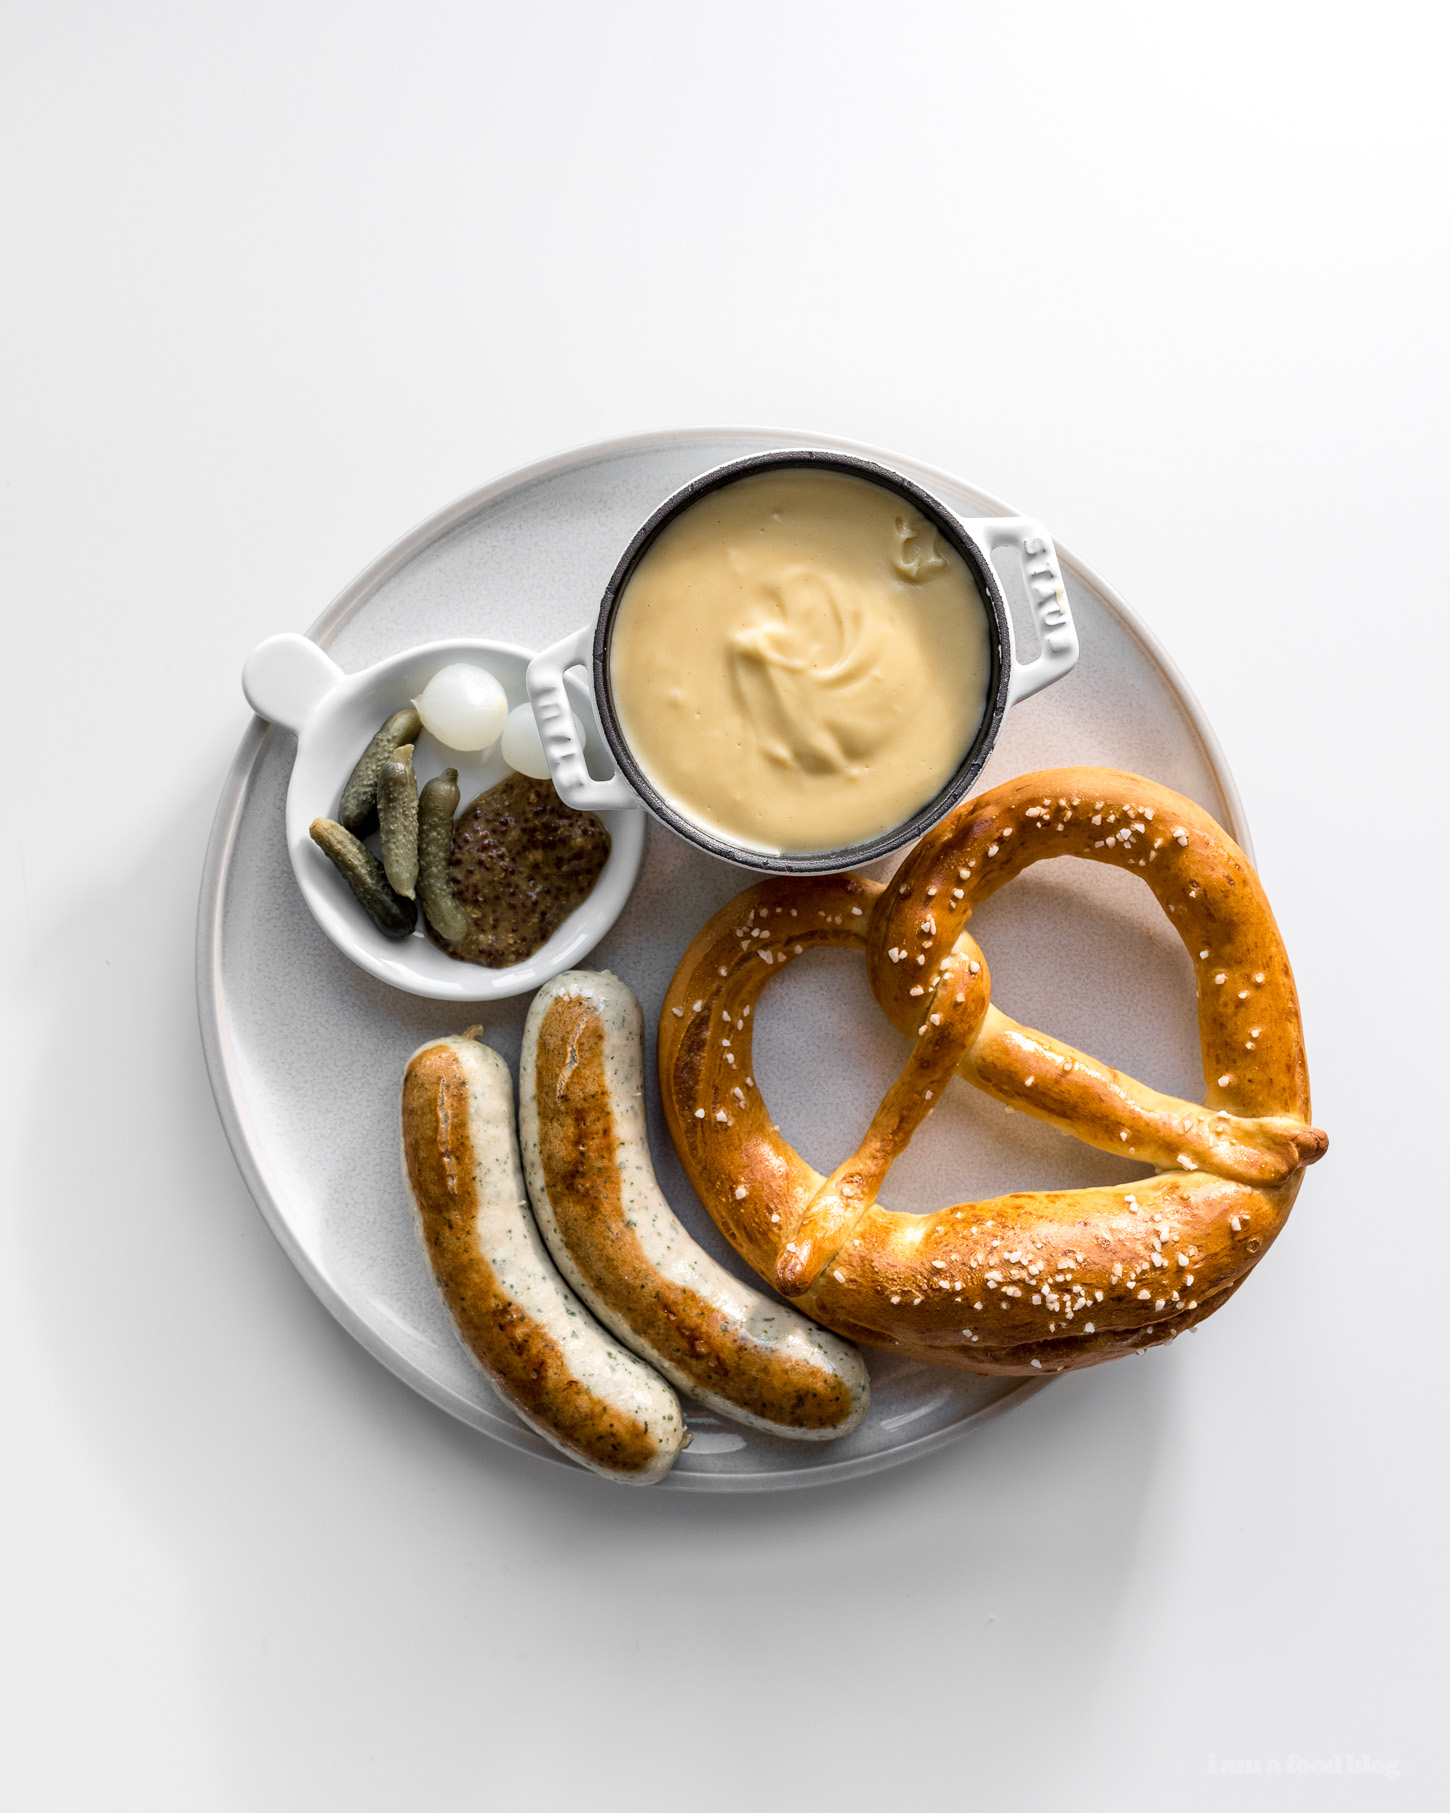 Traditional German Soft Pretzels Recipe - www.iamafoodblog.com